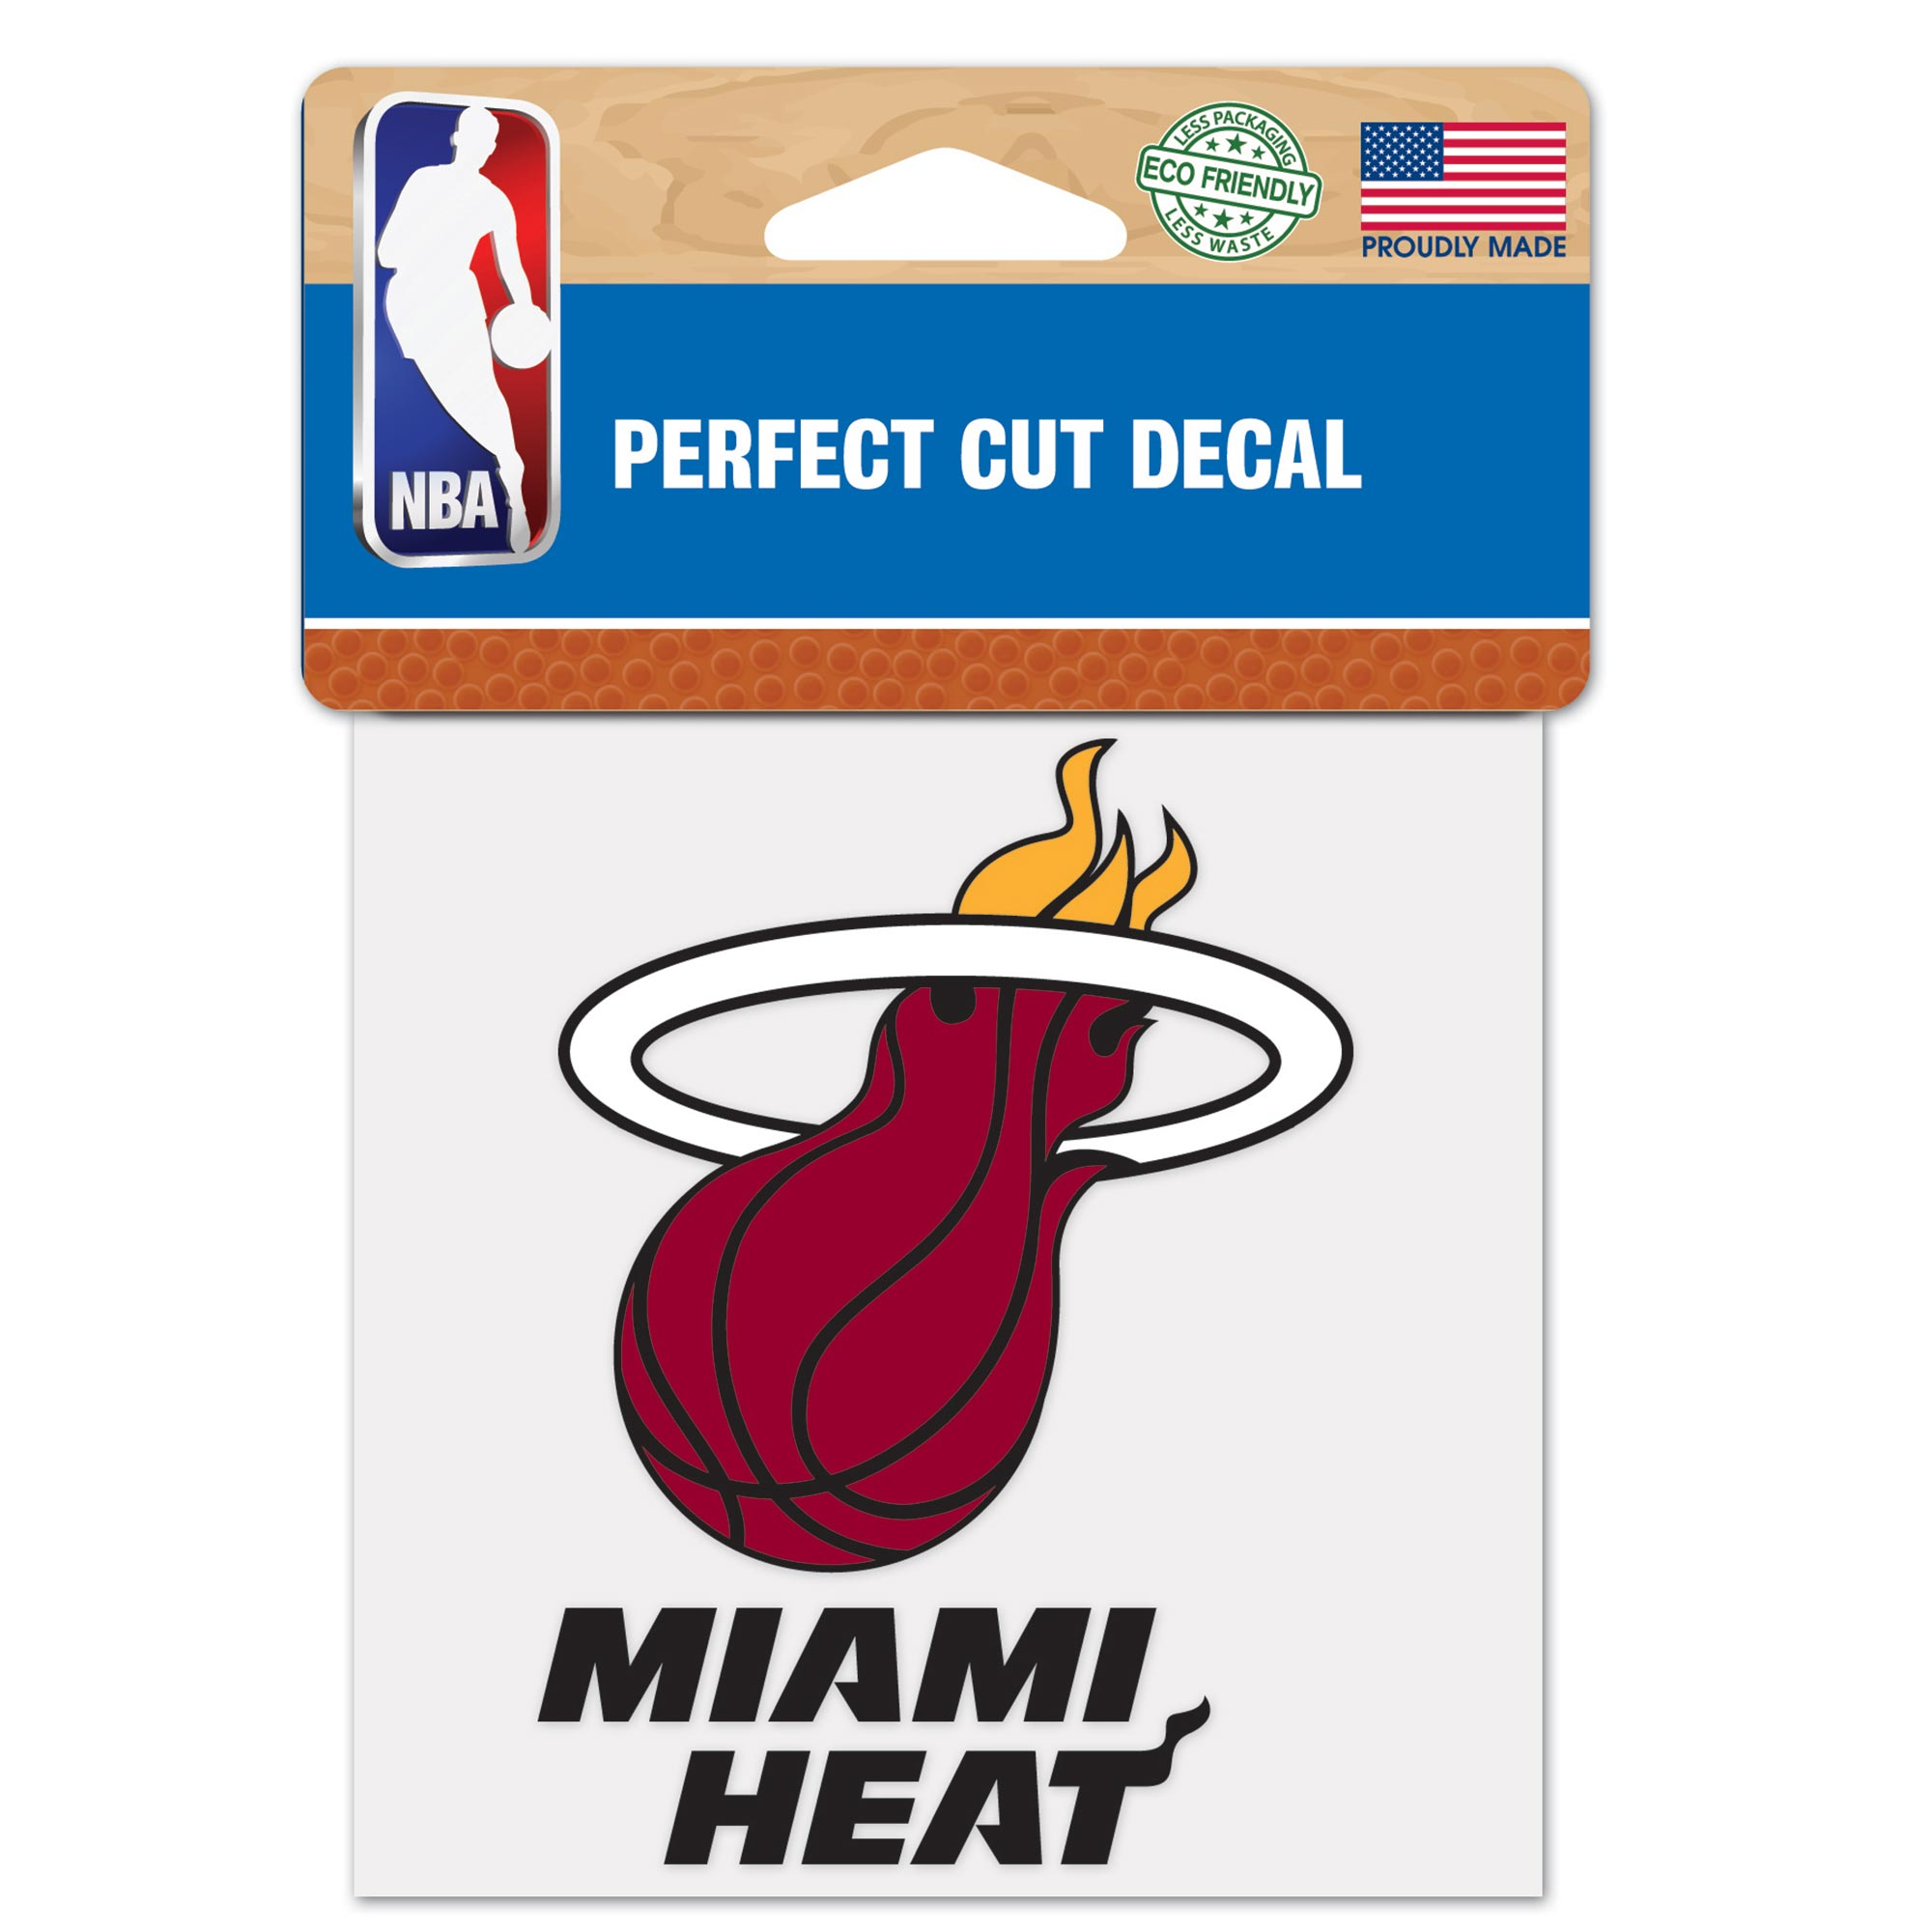 Miami Heat 4x4 Perfect Cut Decal